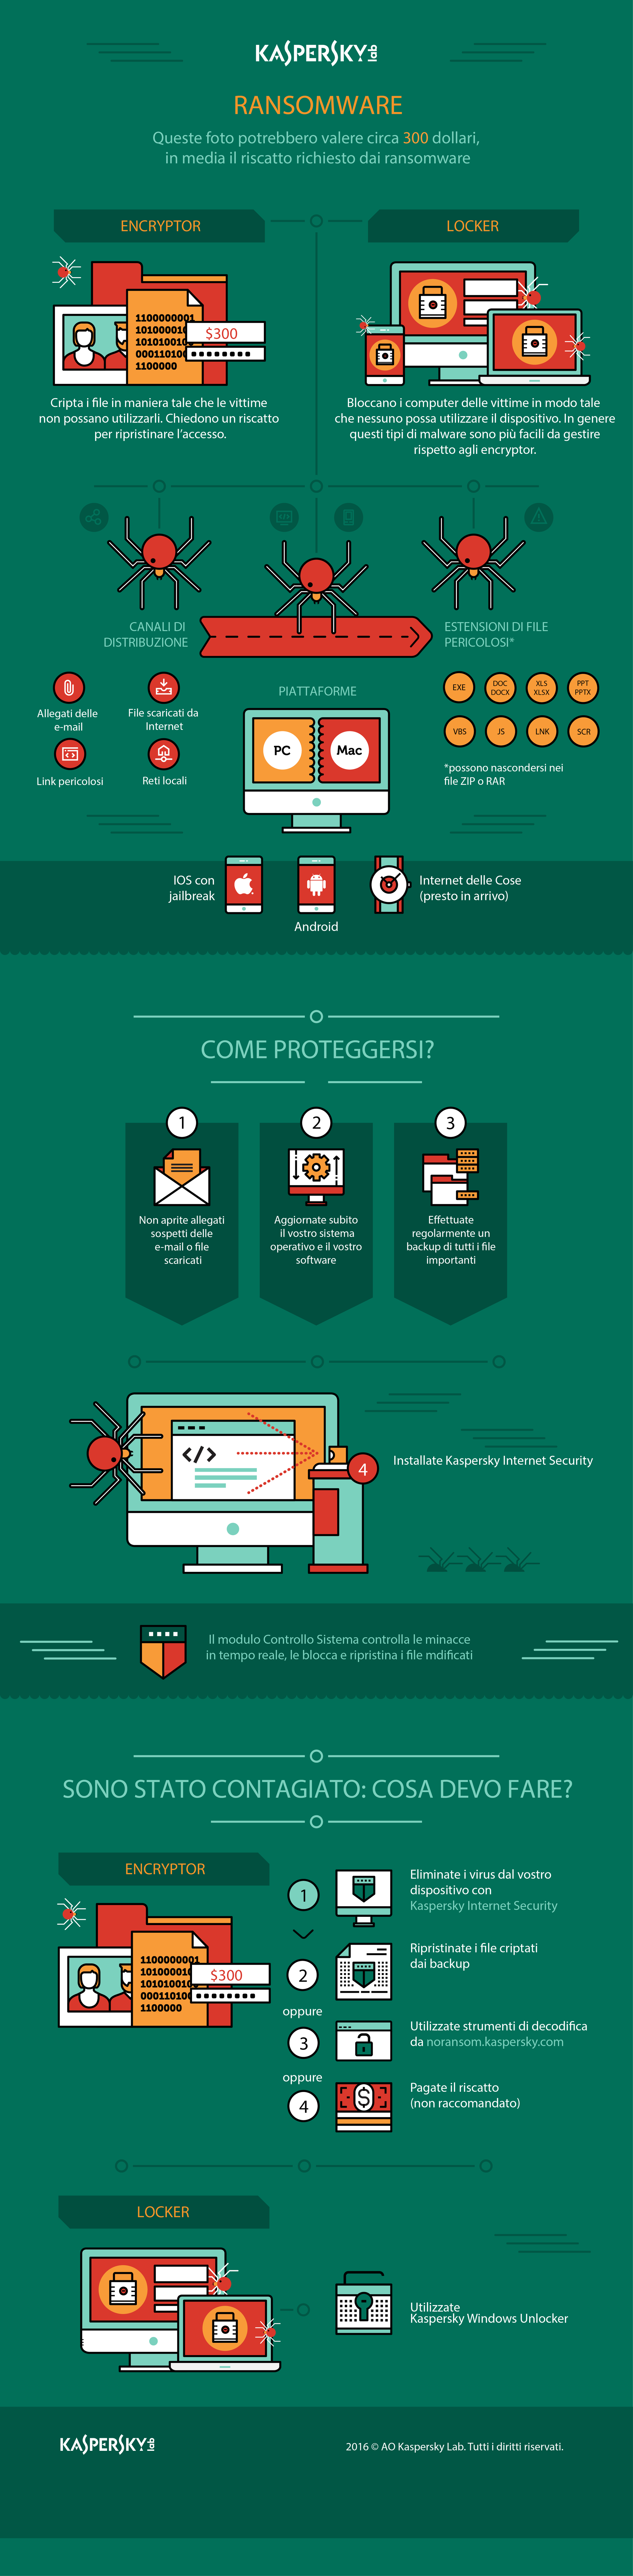 ransomware_it